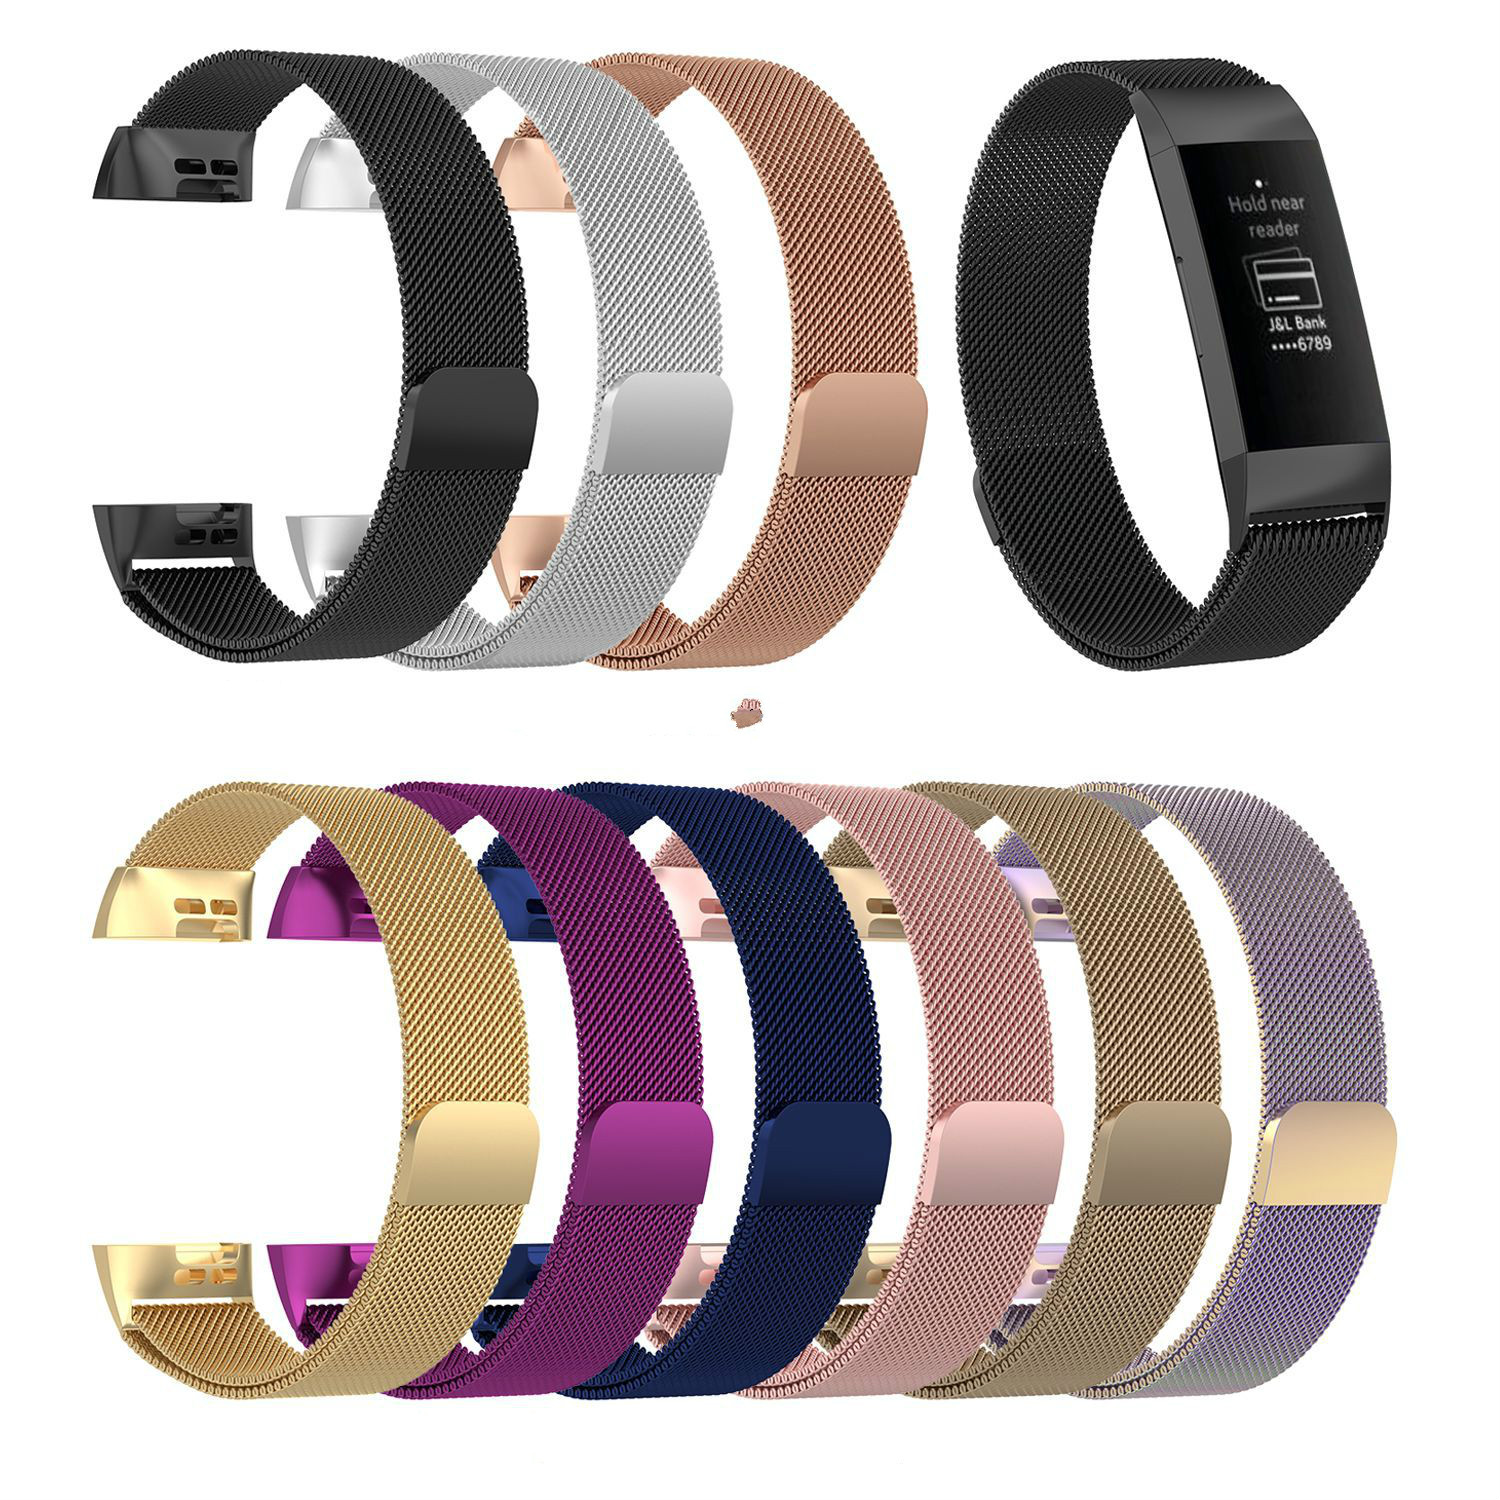 For Fitbit Charge 3 Band Milanese for Fitbit Charge 3 Milanese Band Stainless Steel Magnetic Loop Smart Watch Strap ReplacementFor Fitbit Charge 3 Band Milanese for Fitbit Charge 3 Milanese Band Stainless Steel Magnetic Loop Smart Watch Strap Replacement